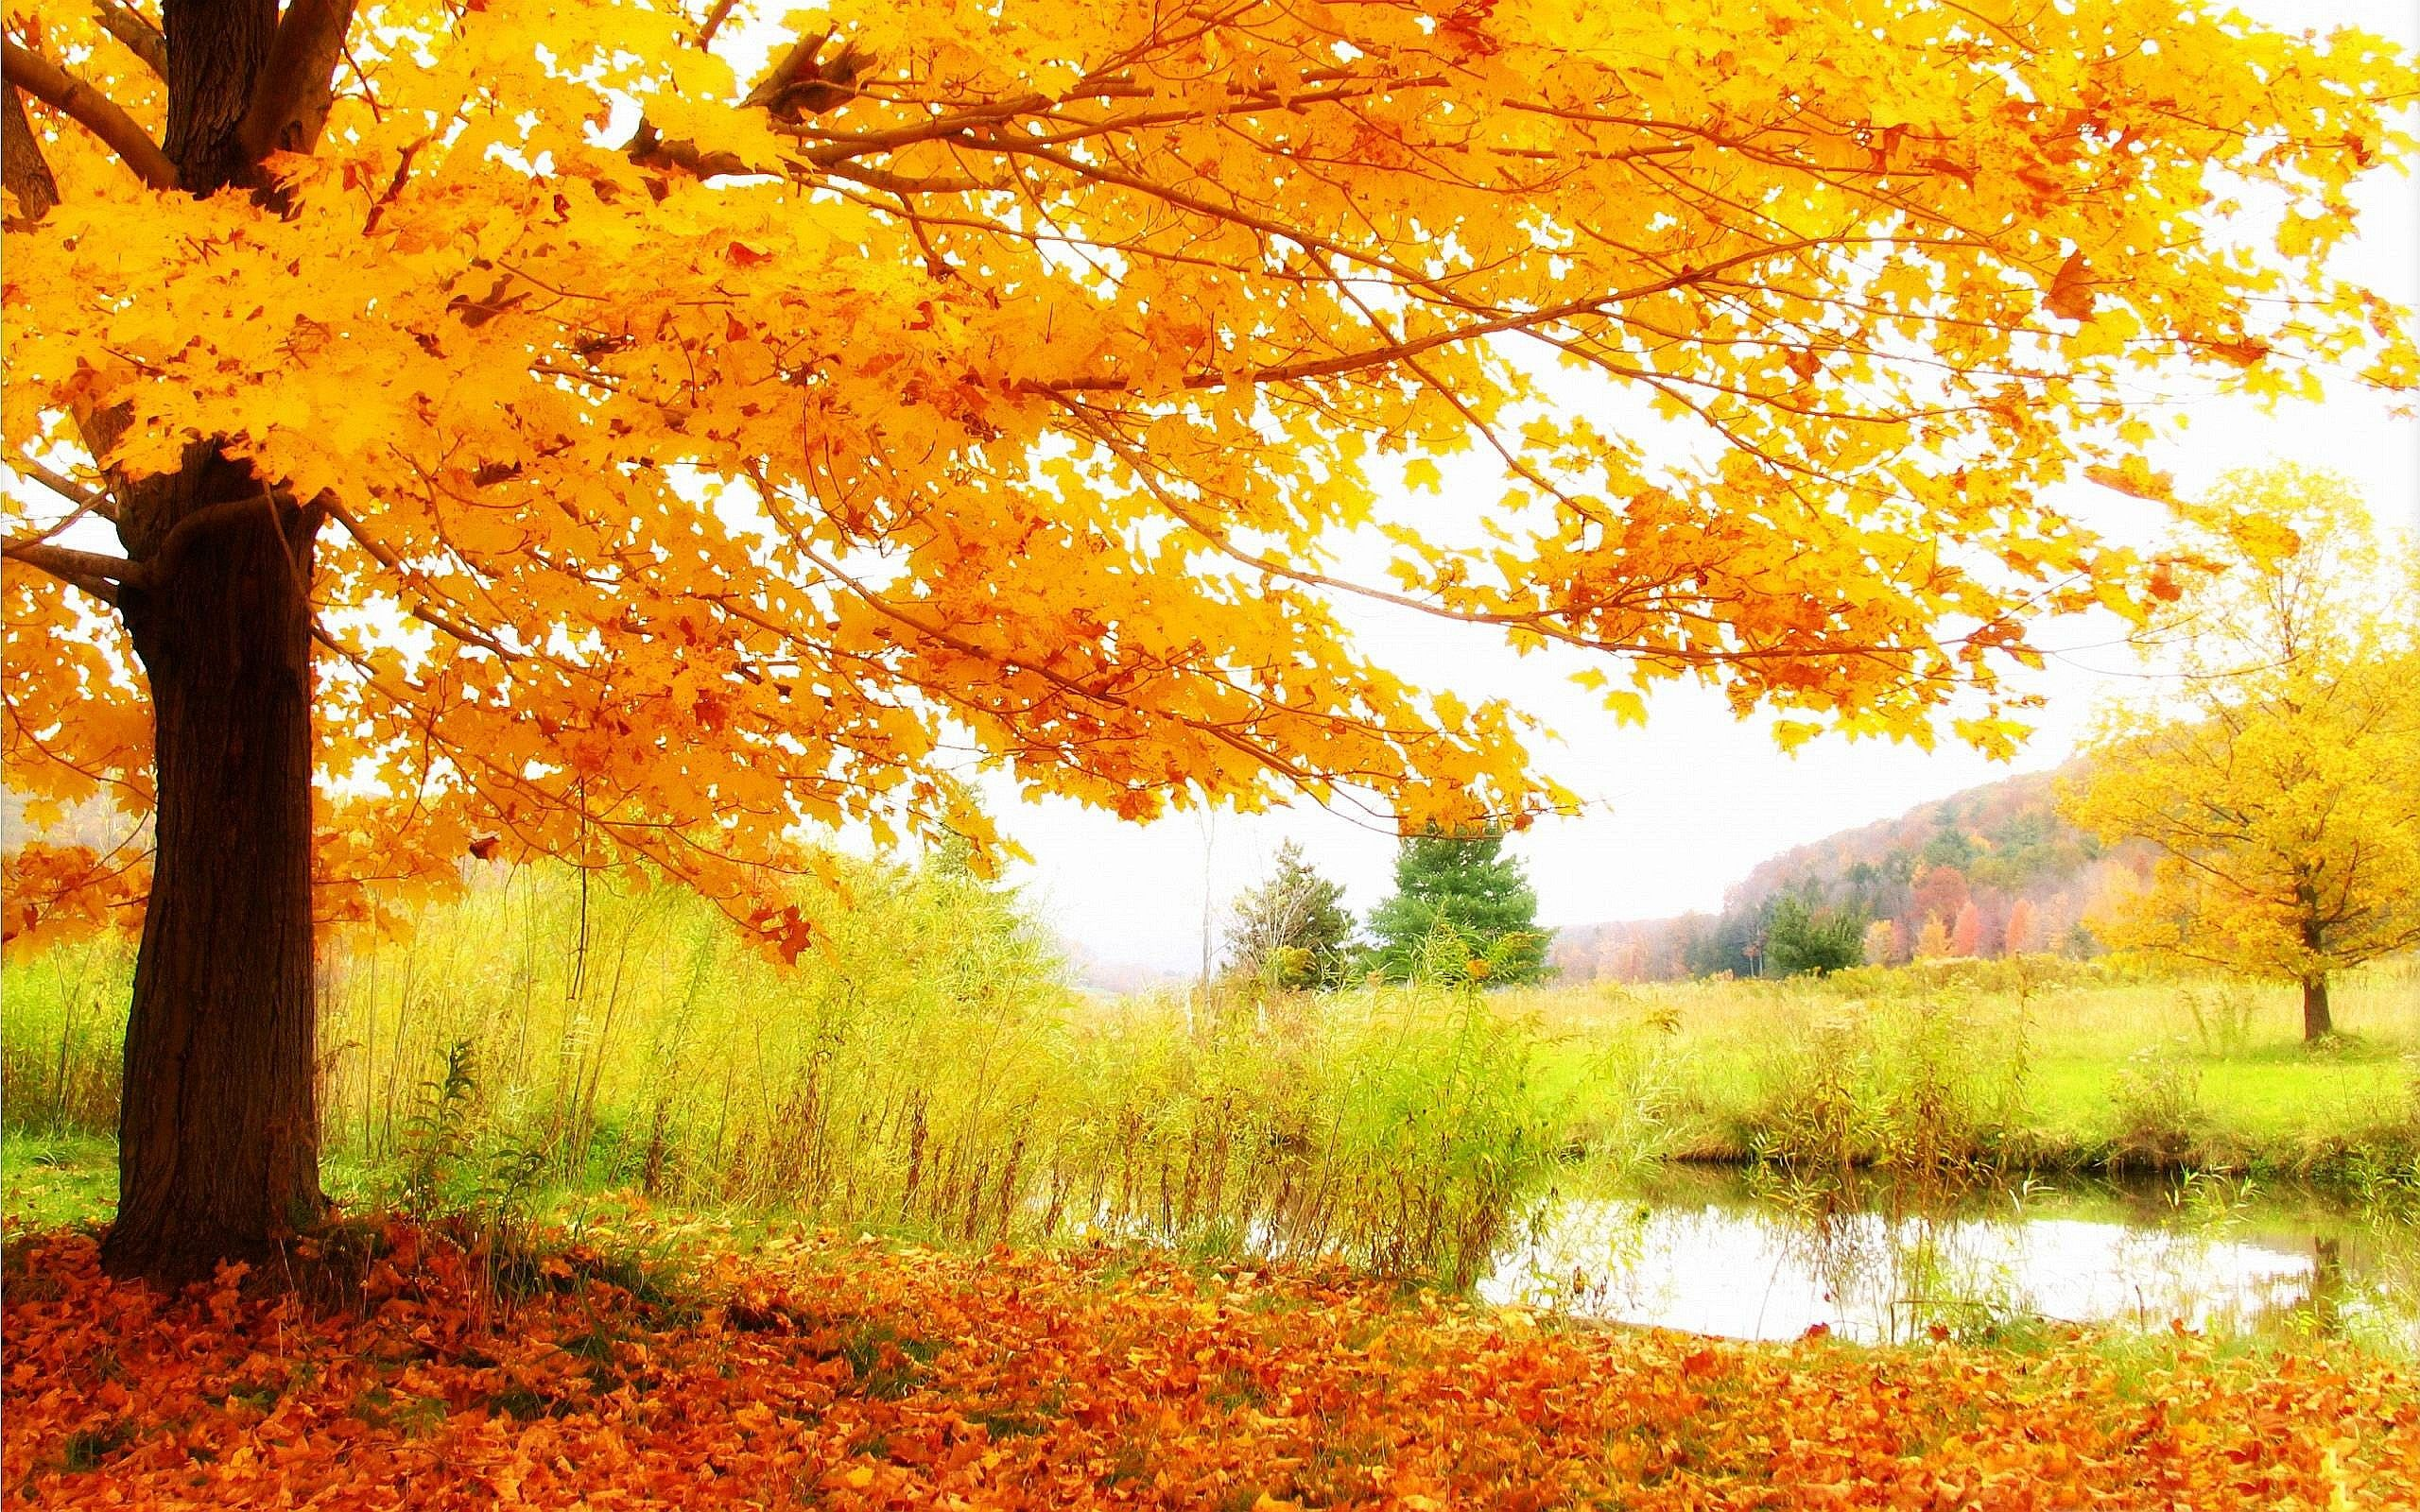 Beautiful Scenery Pictures Enjoy The Beautiful Scenery And Have A Cup Of Relaxing Afternoon Tea Scenery Wallpaper Autumn Scenery Autumn Landscape